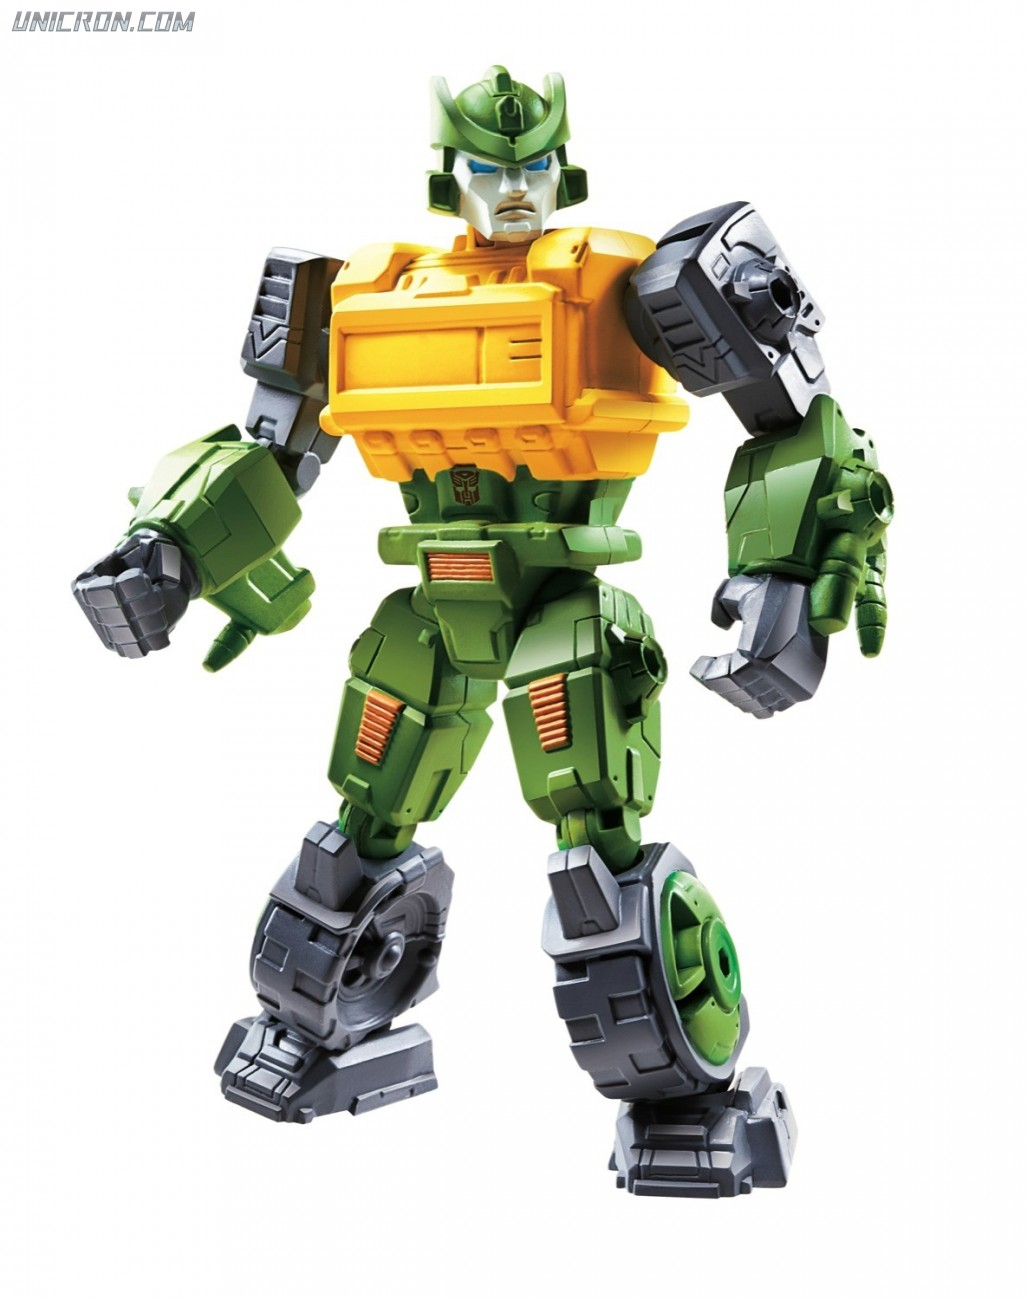 Transformers Hero Mashers Springer (Hero Mashers) toy